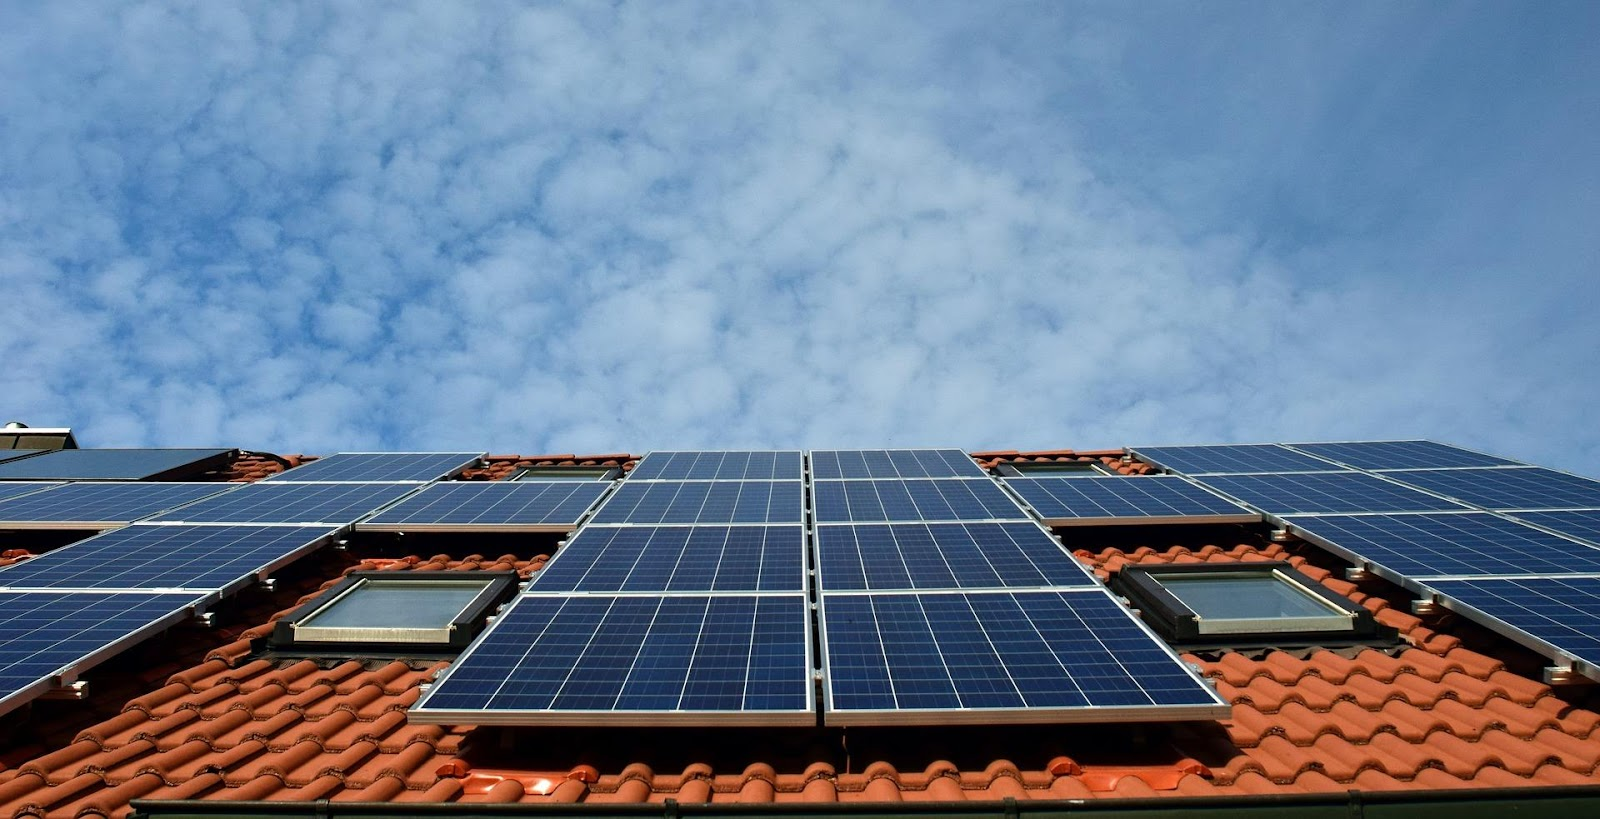 Multiple solar panels on the roof of a house